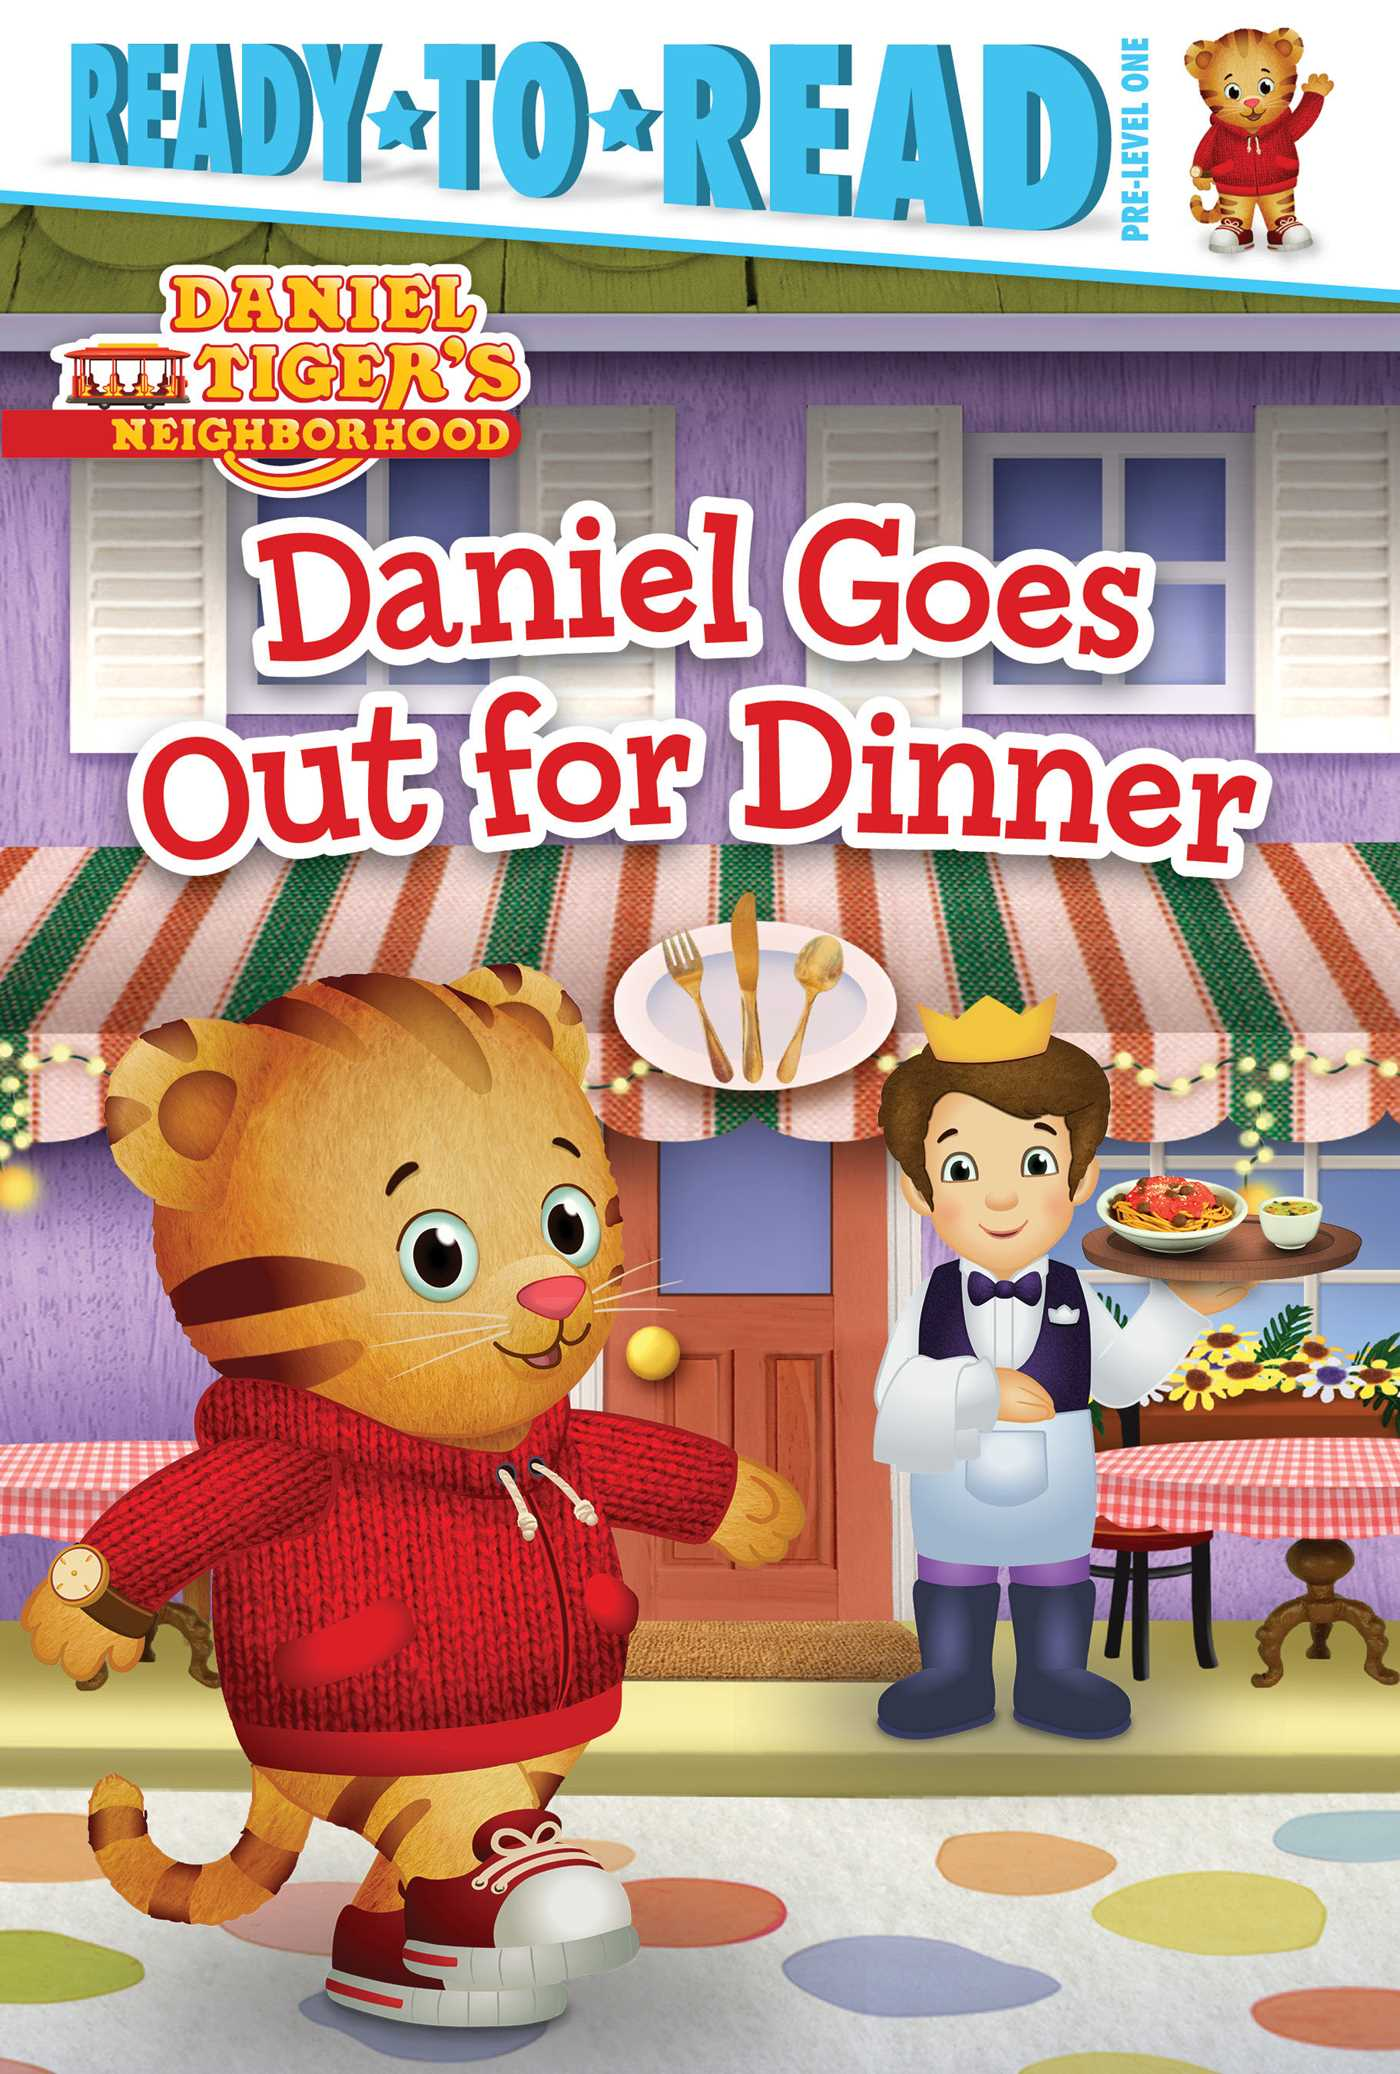 Daniel-goes-out-for-dinner-9781481428712_hr